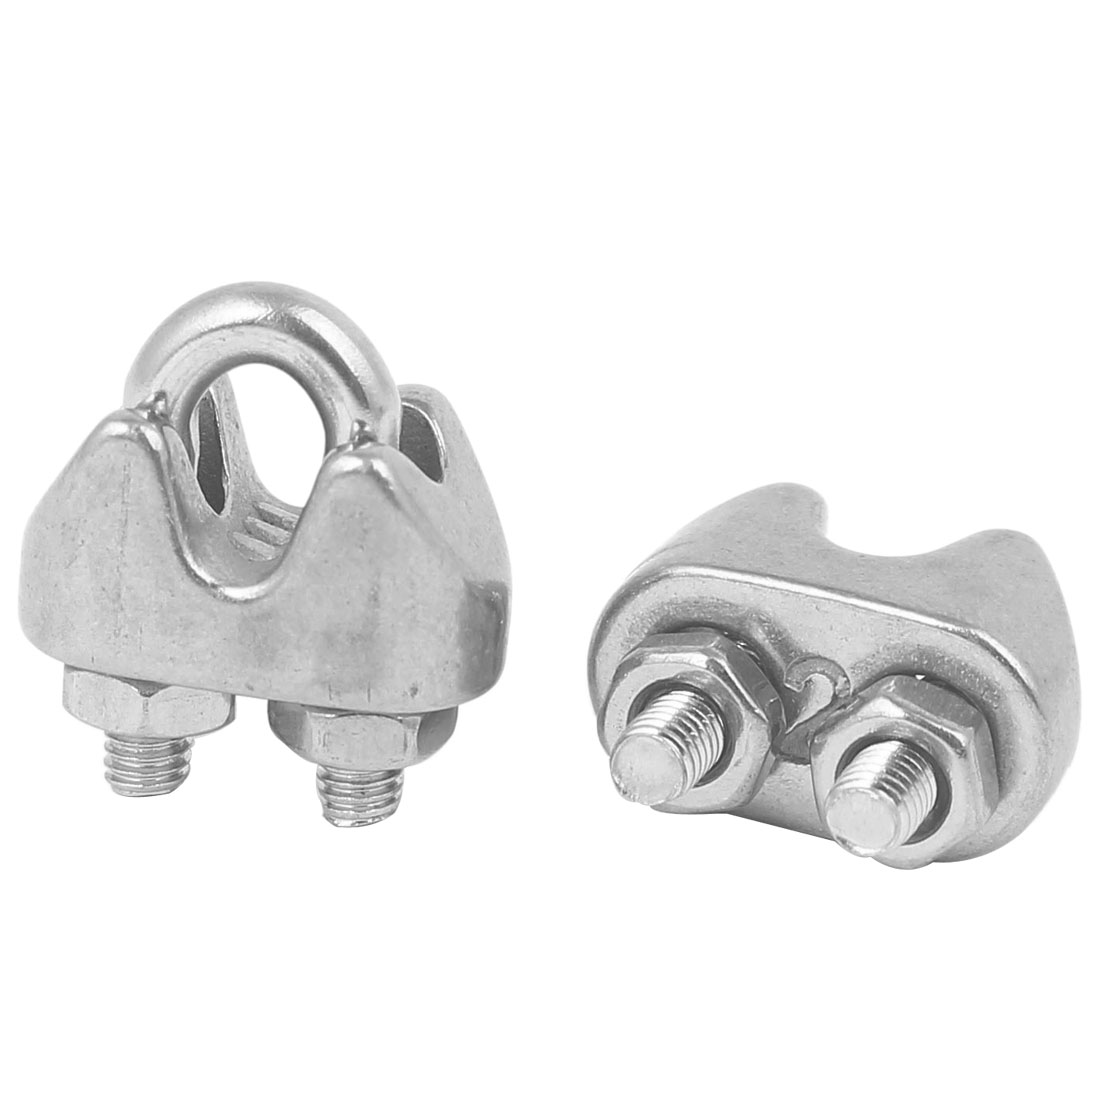 uxcell 2pcs m2 3mm 0 12 u shape bolt saddle clamp 304 stainless steel cable [ 1100 x 1100 Pixel ]